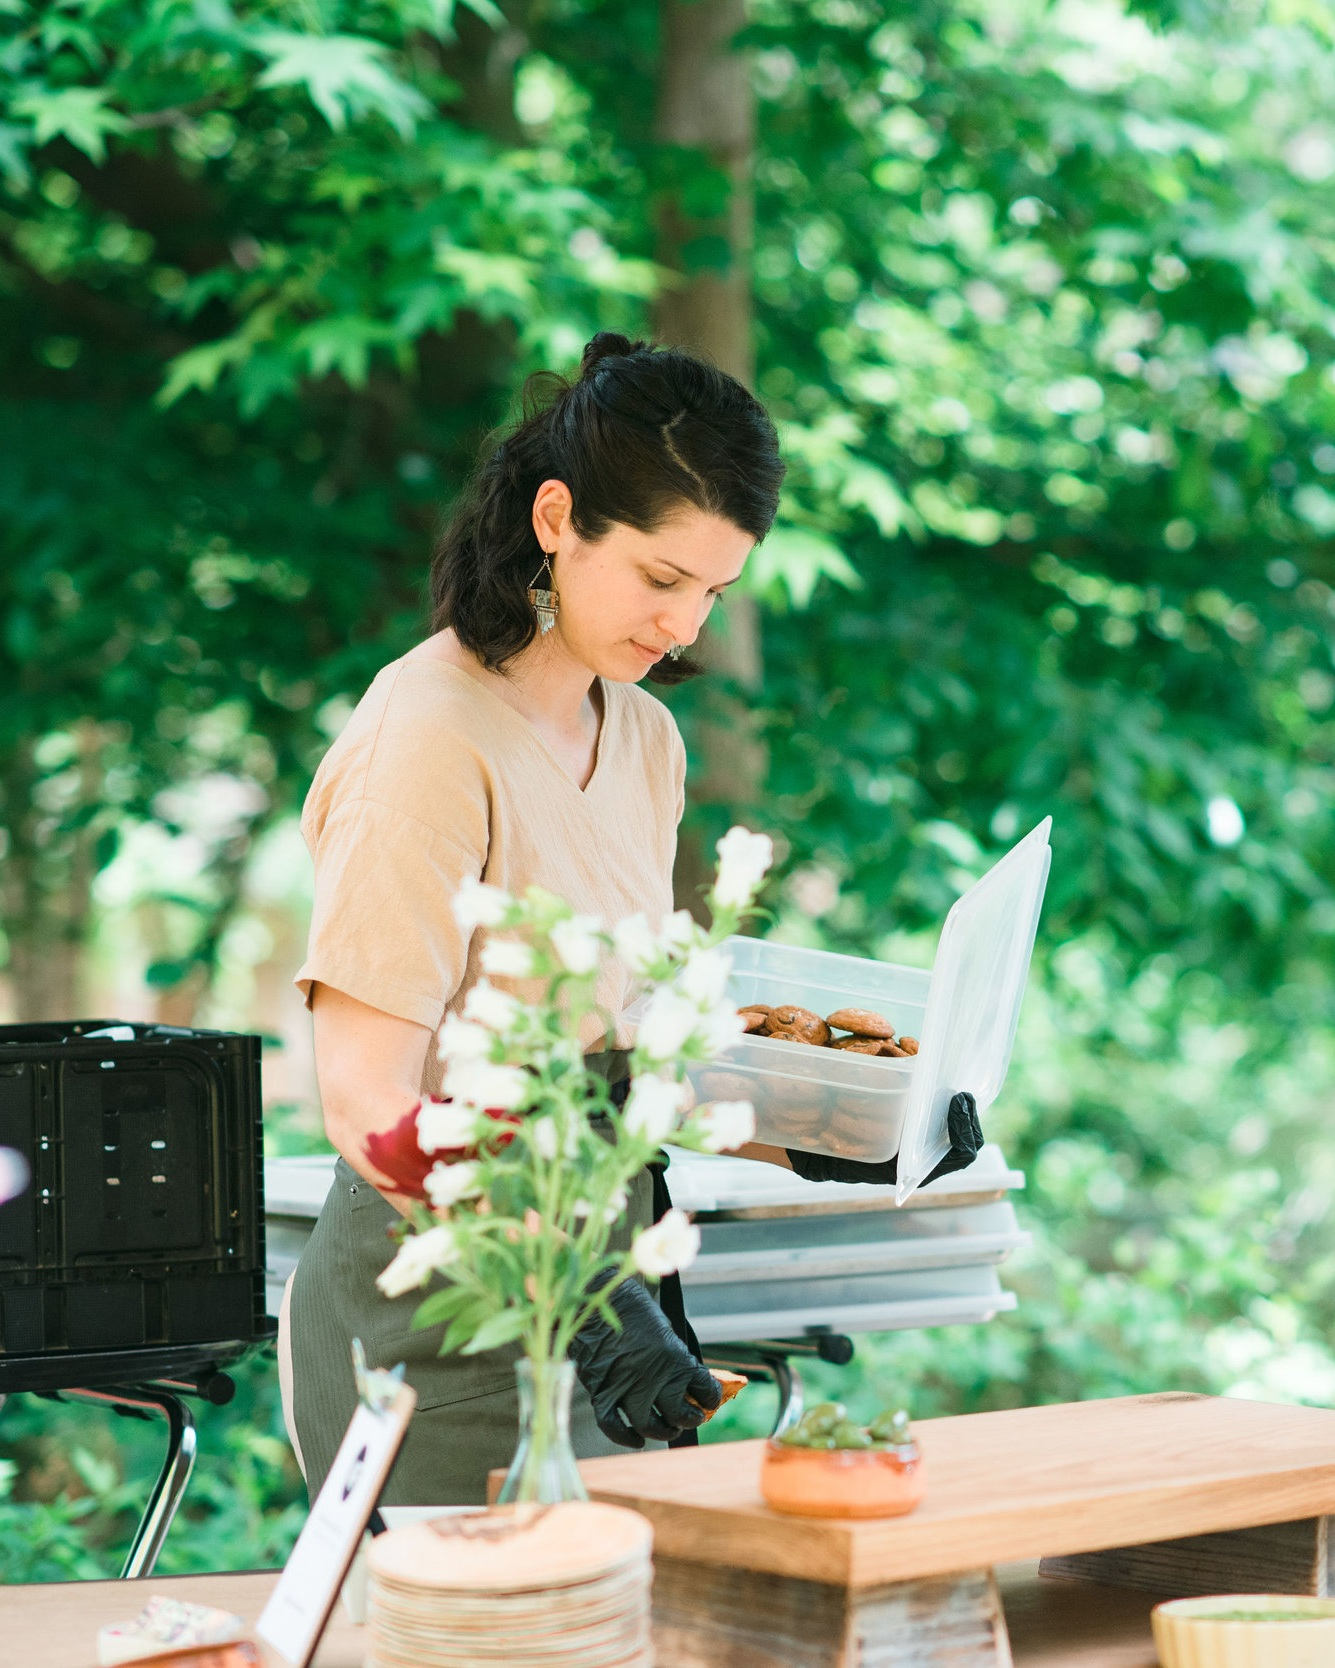 Paula Seville - BusinessAfter stints in management consulting and a software startup, Paula ditched the 9 to 5 grind to bring Moveable Feast ATL to the world! When she's not organizing events, interfacing with clients or creating marketing materials, you can find her in the kitchen baking up pastries and sweets for our menus.